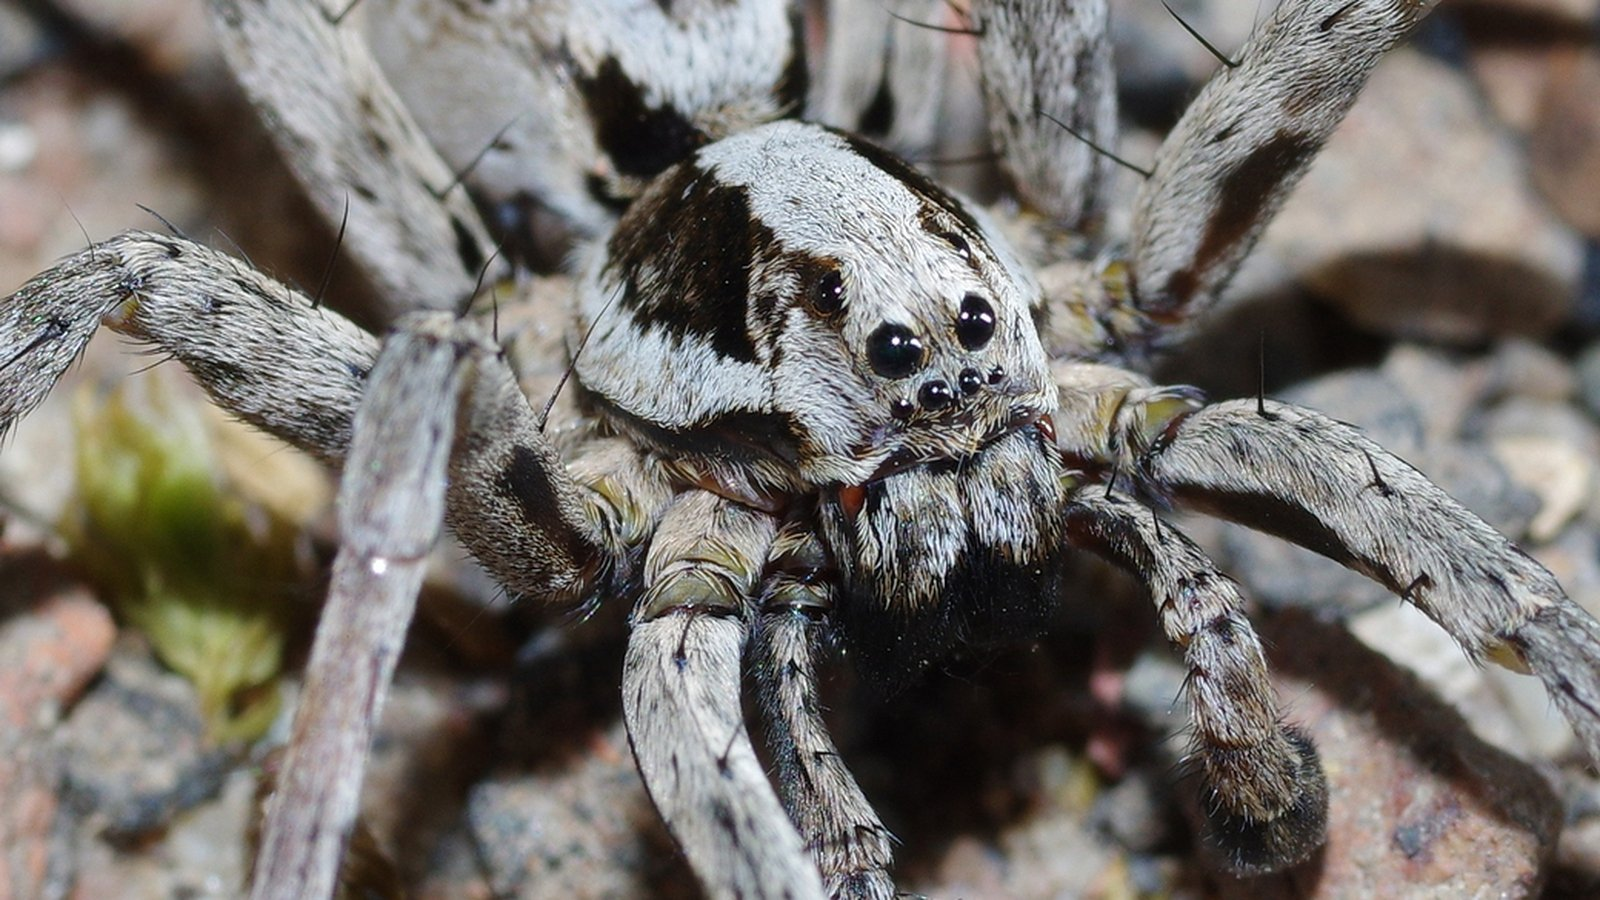 First sign of critically endangered spider in 25 years